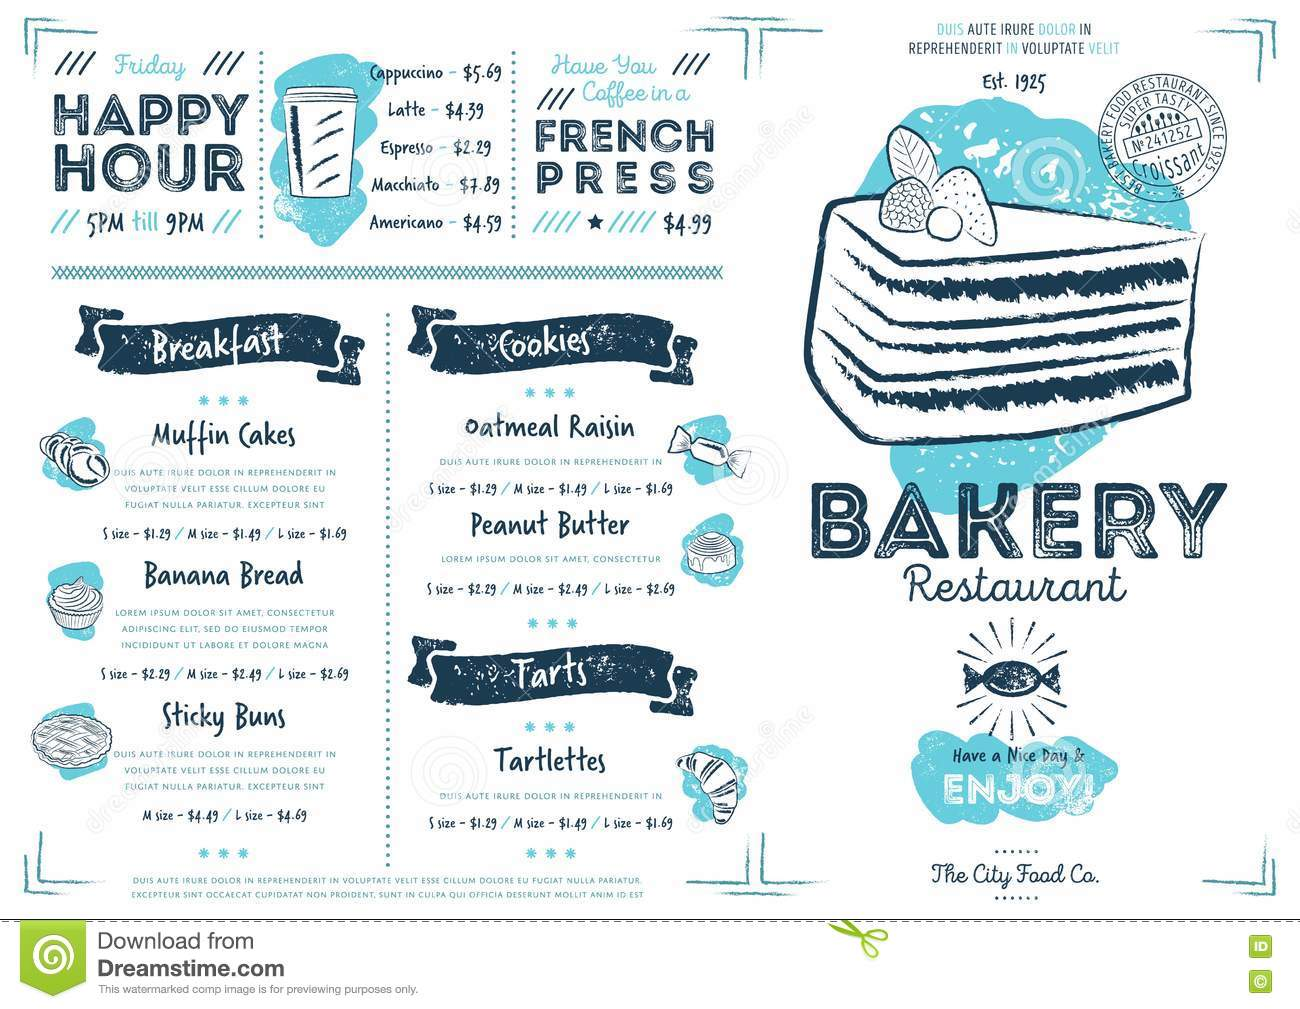 Restaurant Cafe Bakery Menu Template Stock Vector - Image: 74787135